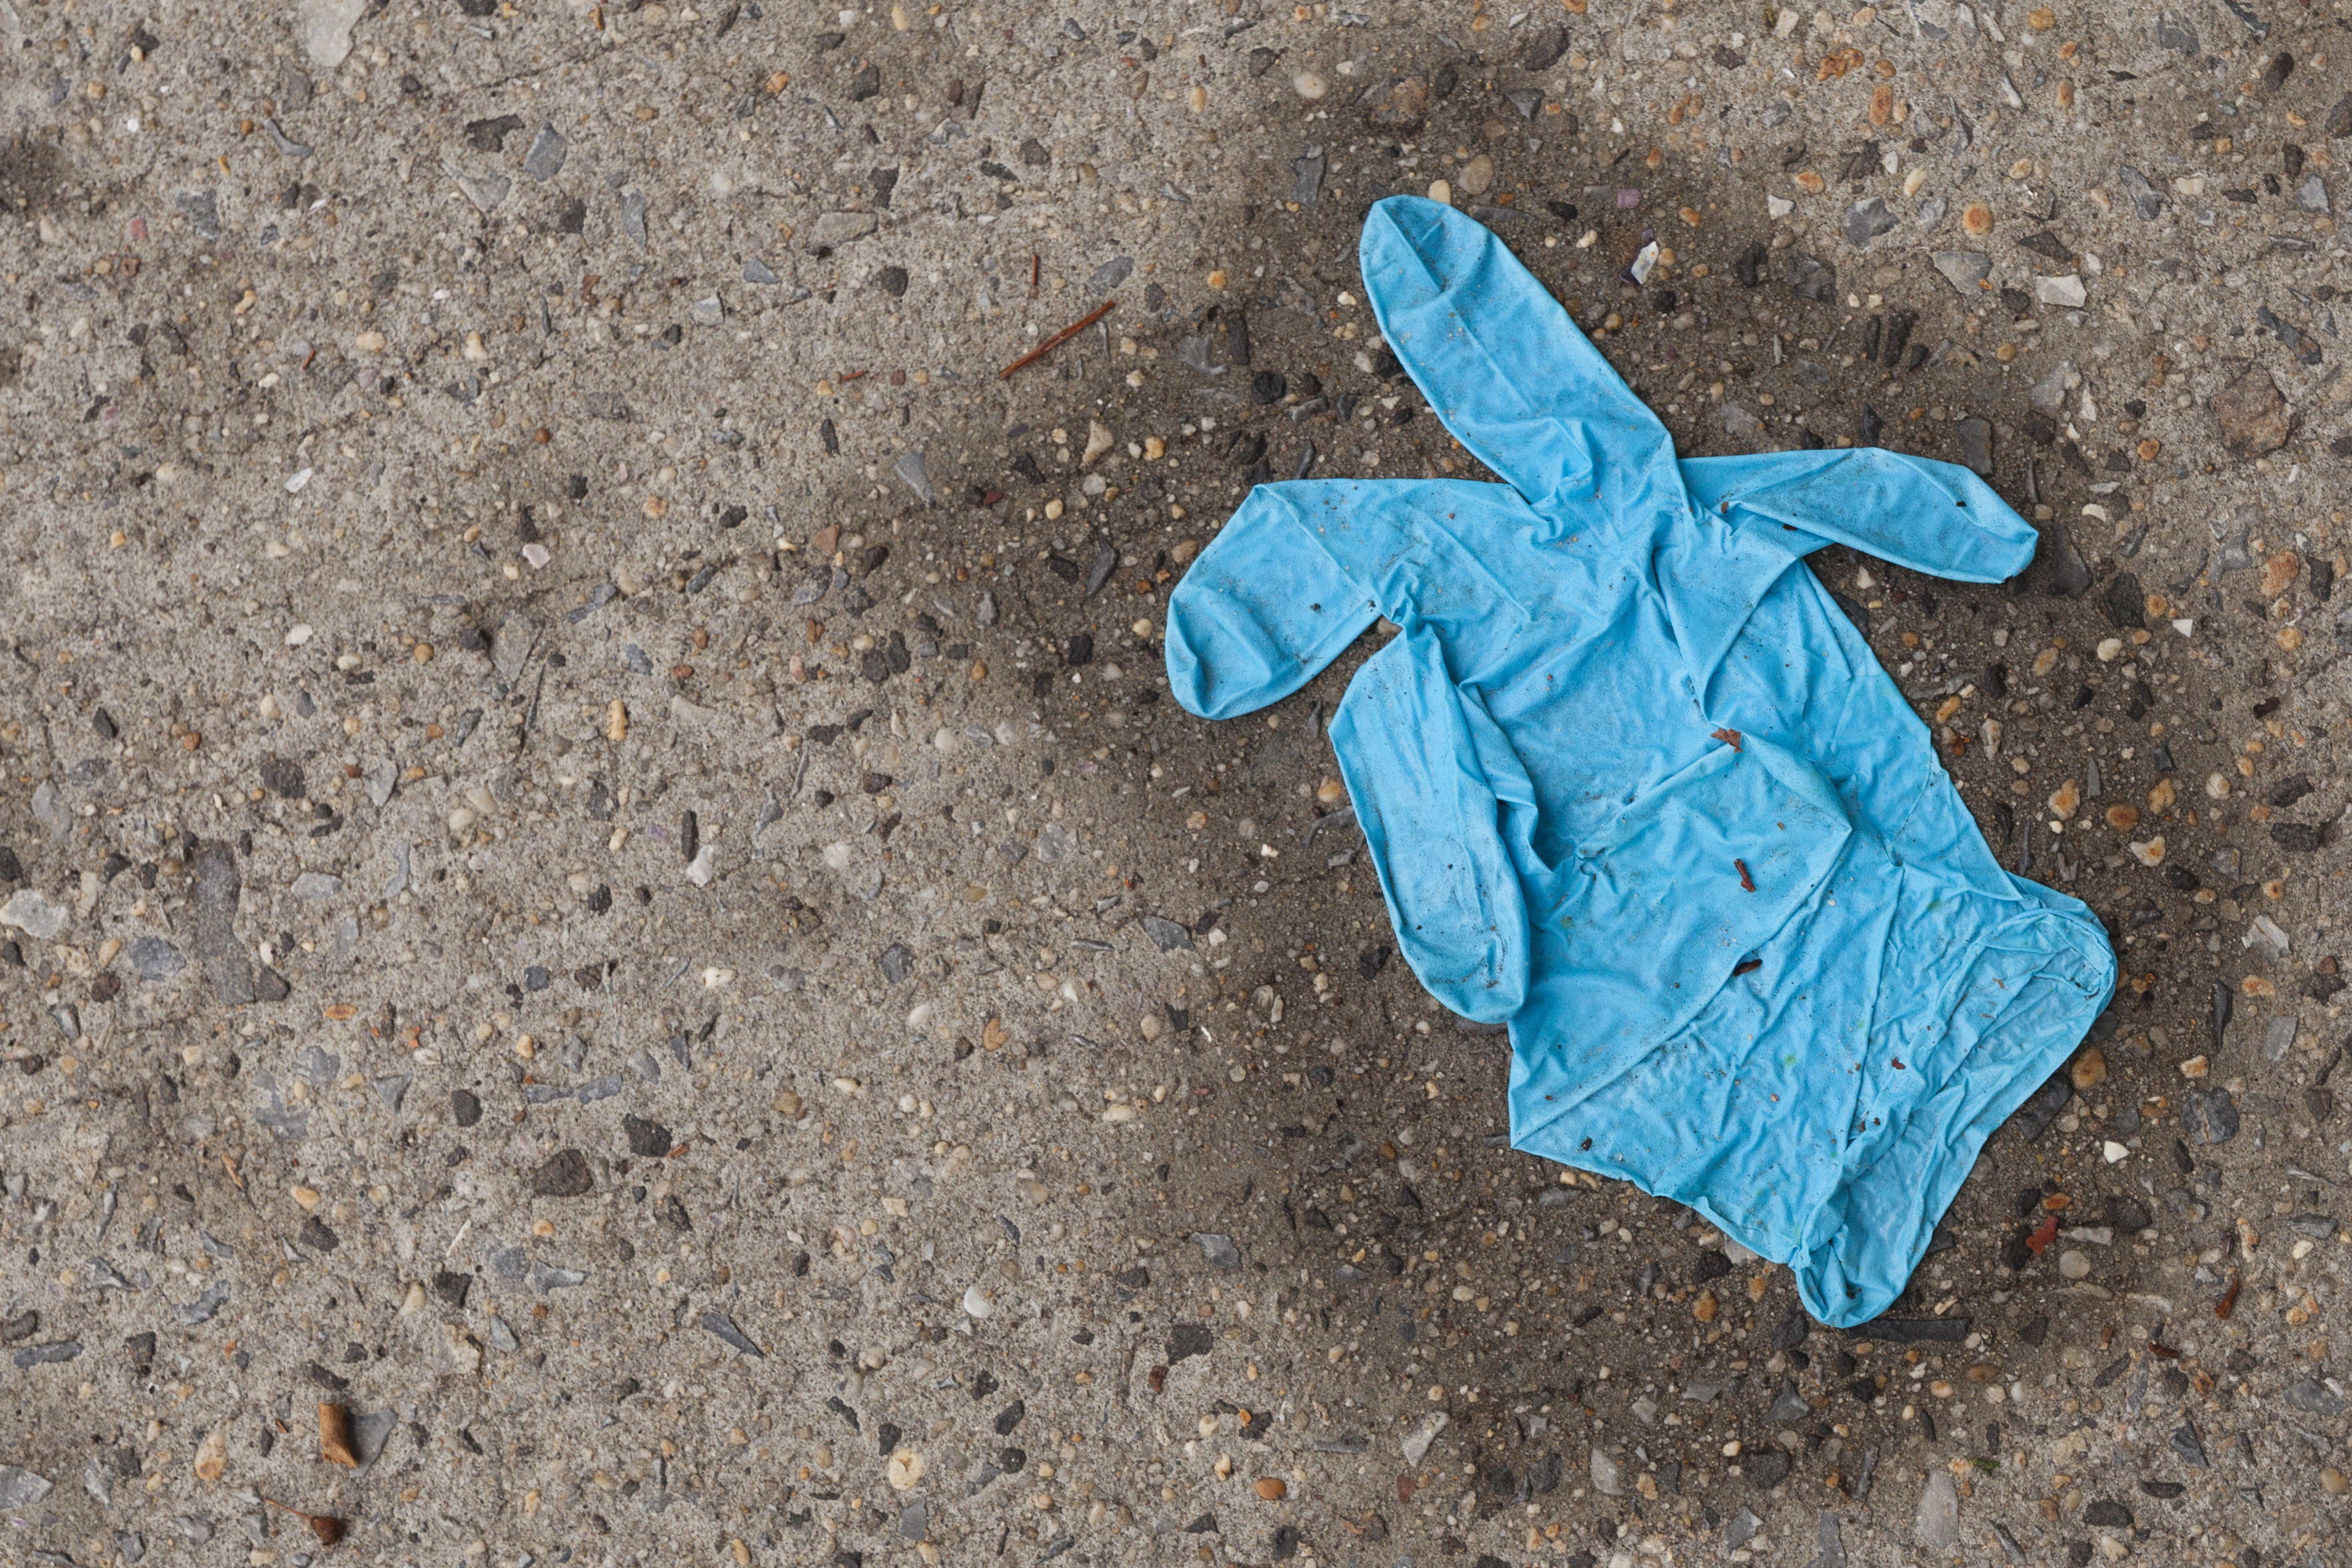 disposable gloves disposed incorrectly